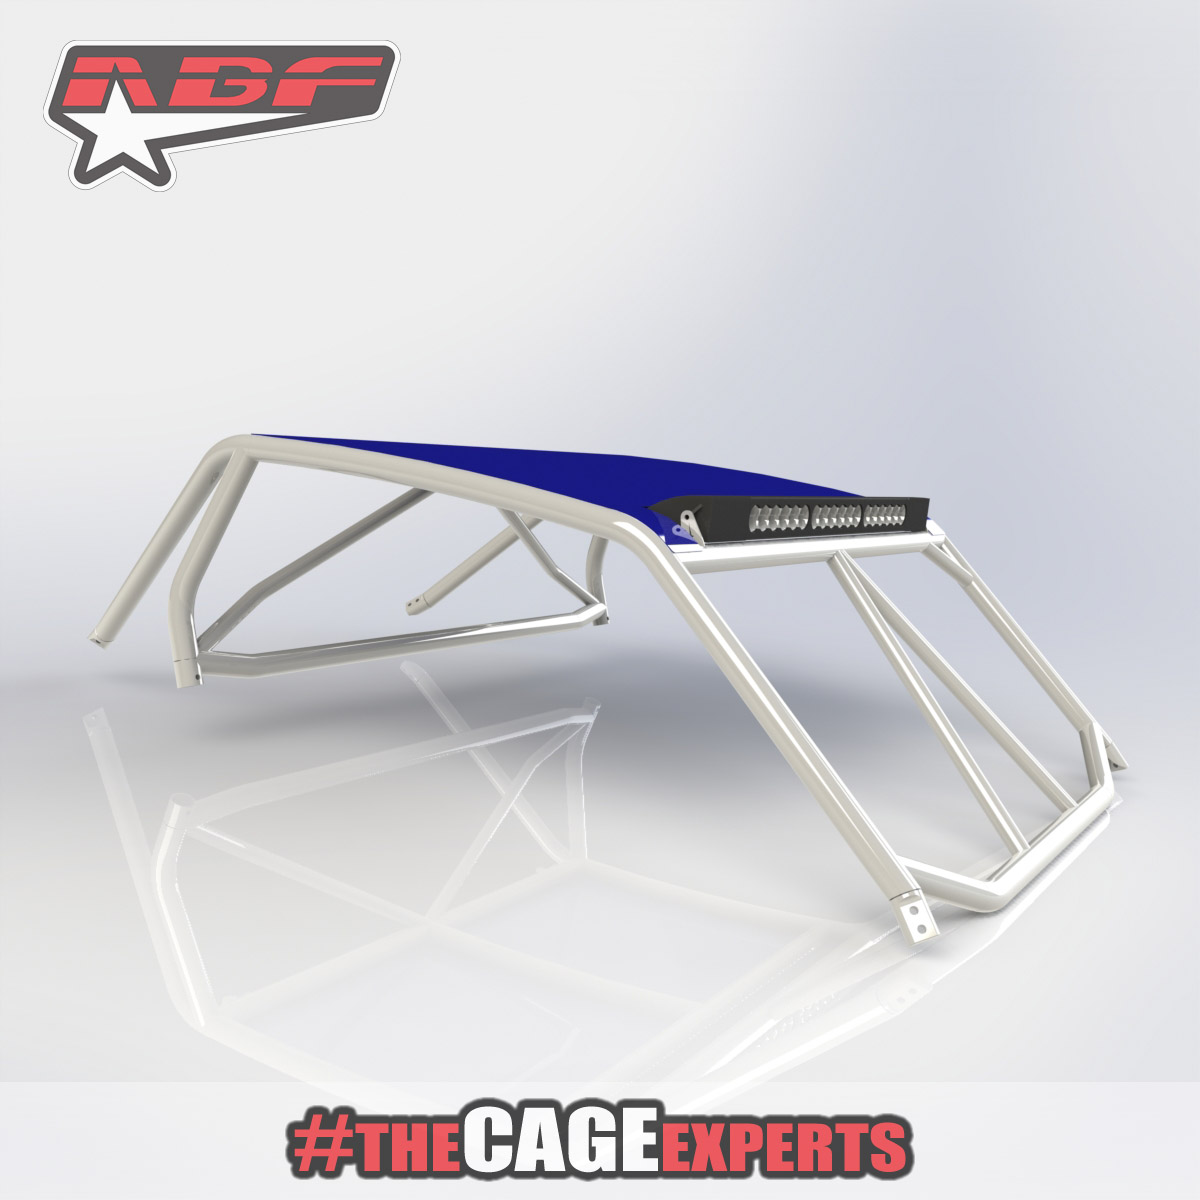 Yamaha Yxz 1000r Roll Cage F16 Cage Abf Fabrication